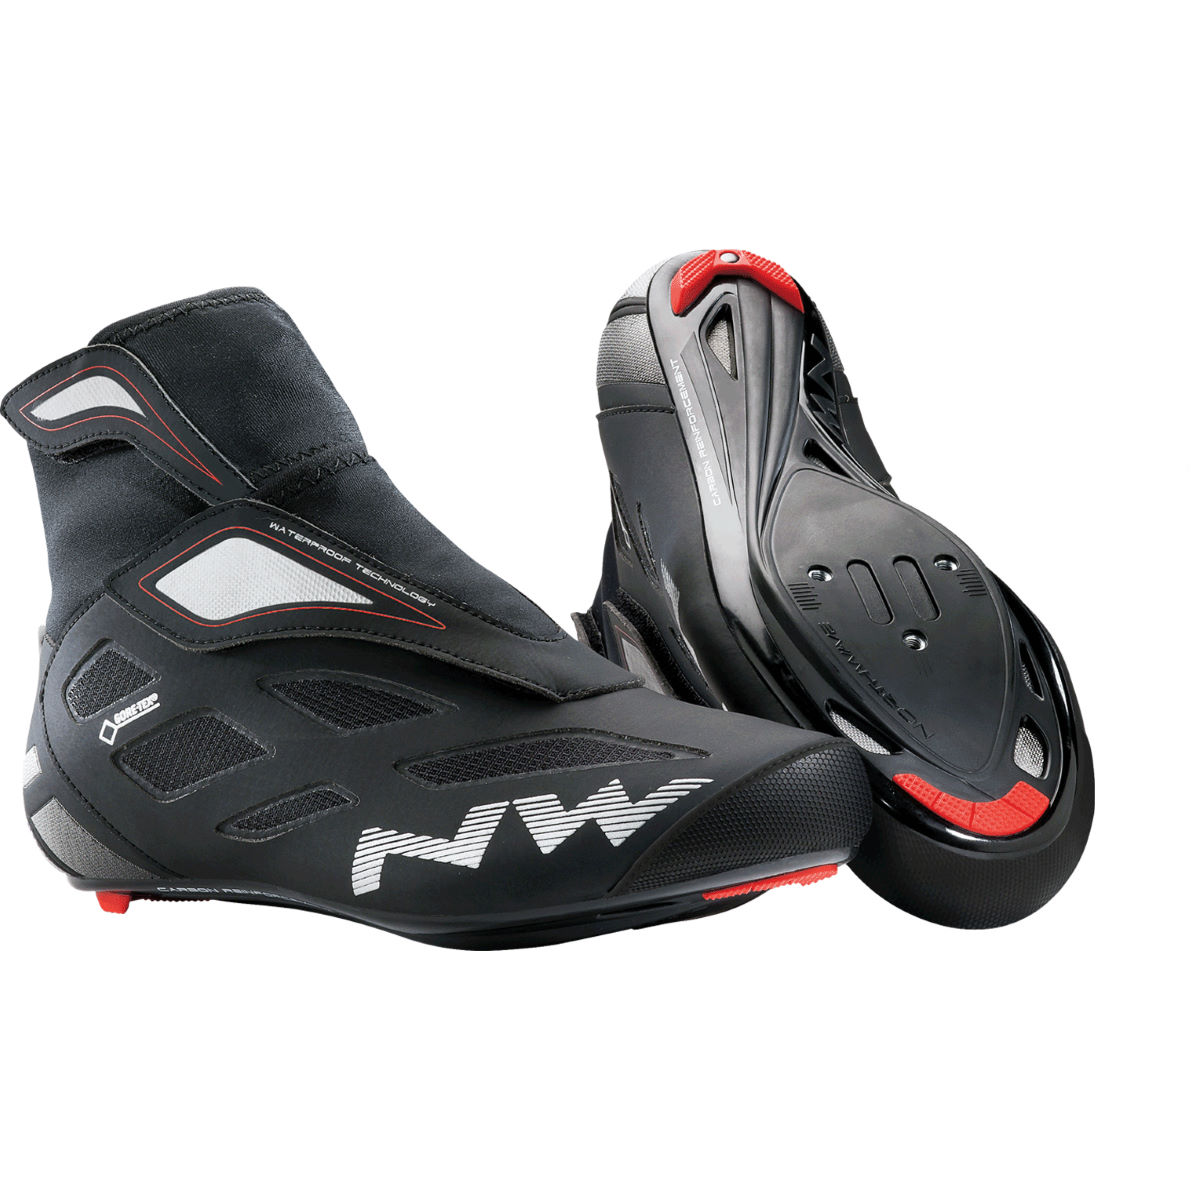 Northwave Fahrenheit 2 GTX Winter Road Shoes - 47 Black | Road Shoes